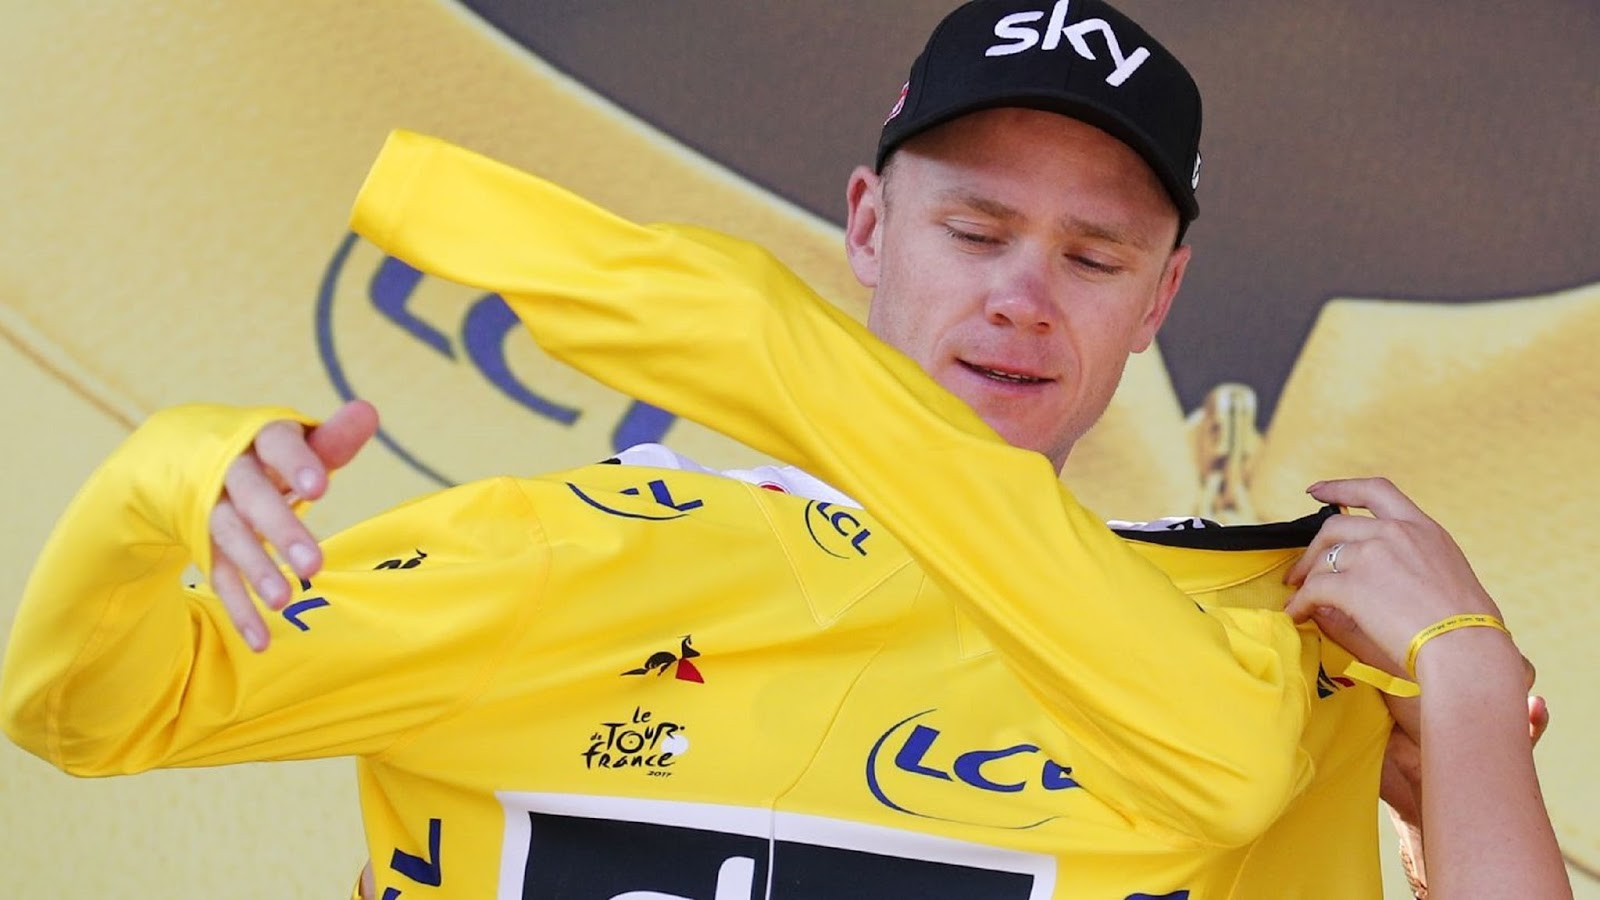 CHRIS FROOME 8